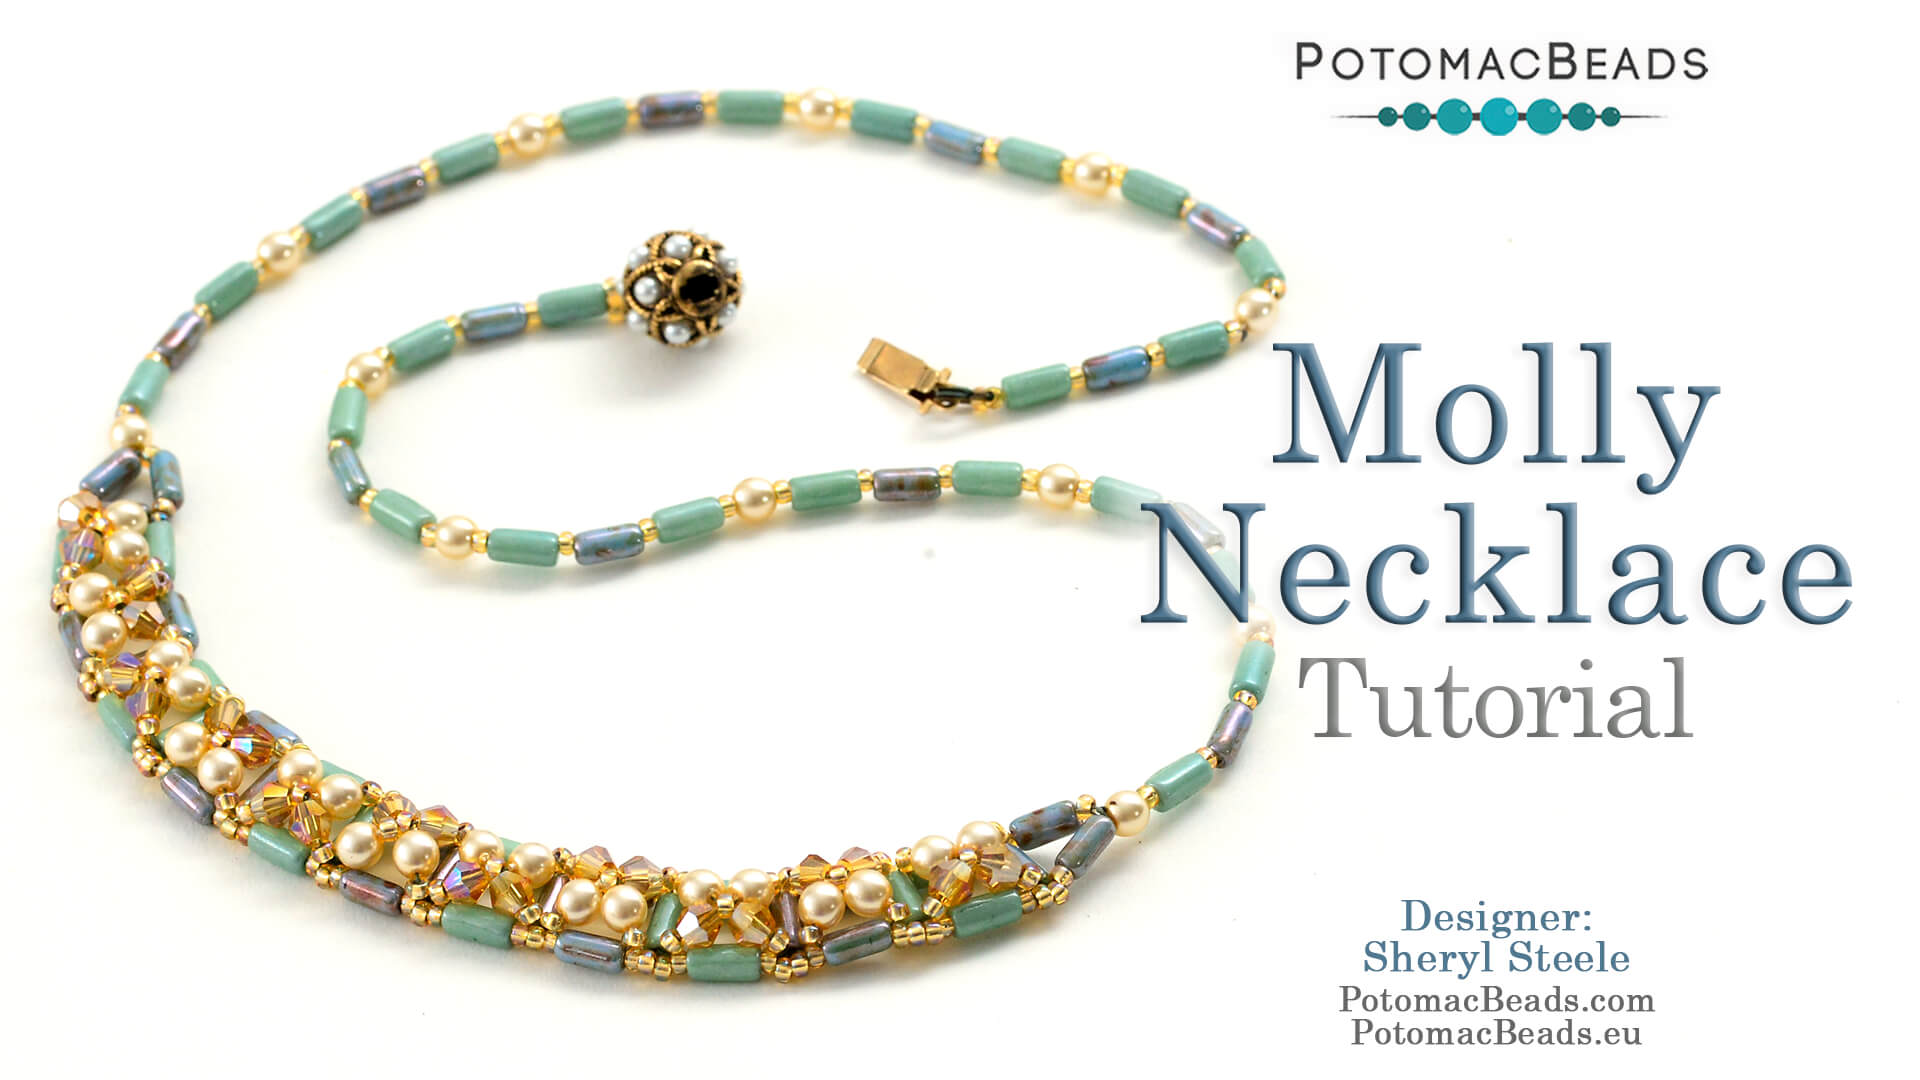 How to Bead Jewelry / Videos Sorted by Beads / Pearl Videos (Czech, Freshwater, Potomac Pearls) / Molly Necklace Tutorial